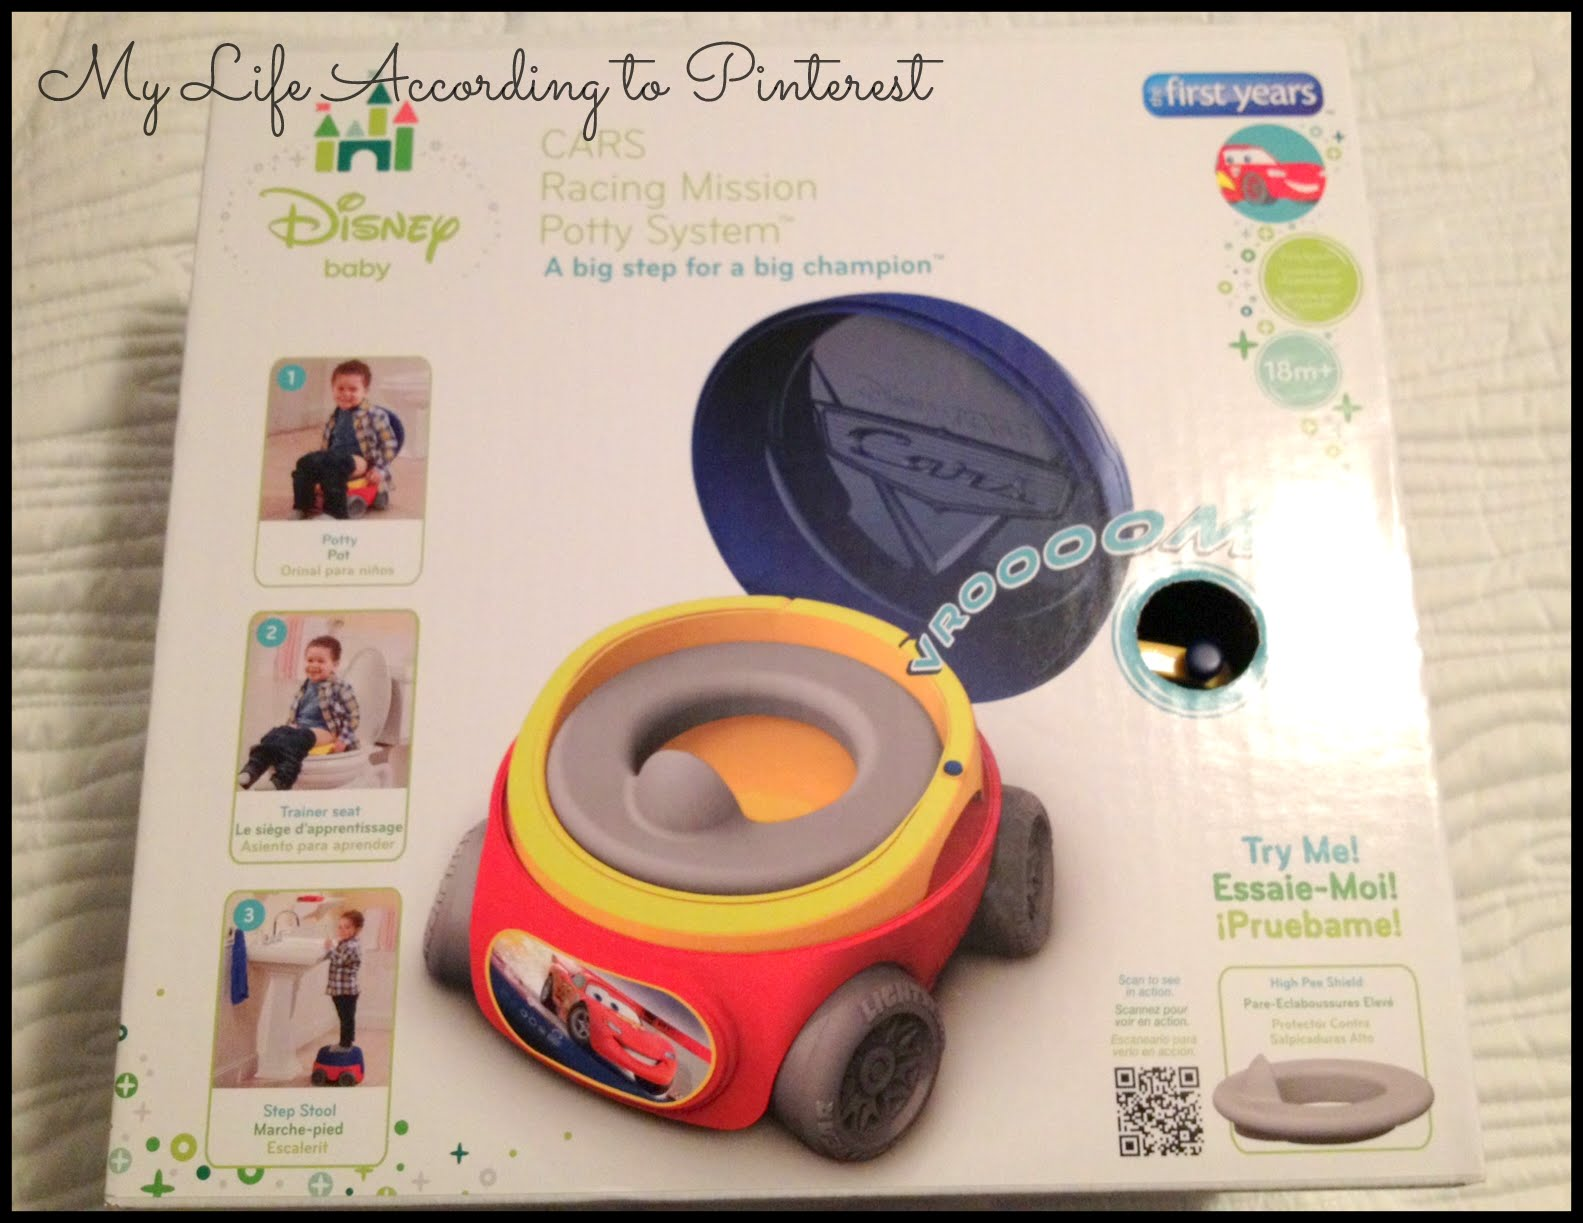 when our potty first arrived i set it in our family room still in the box and my son was immediately running up to it to investigate